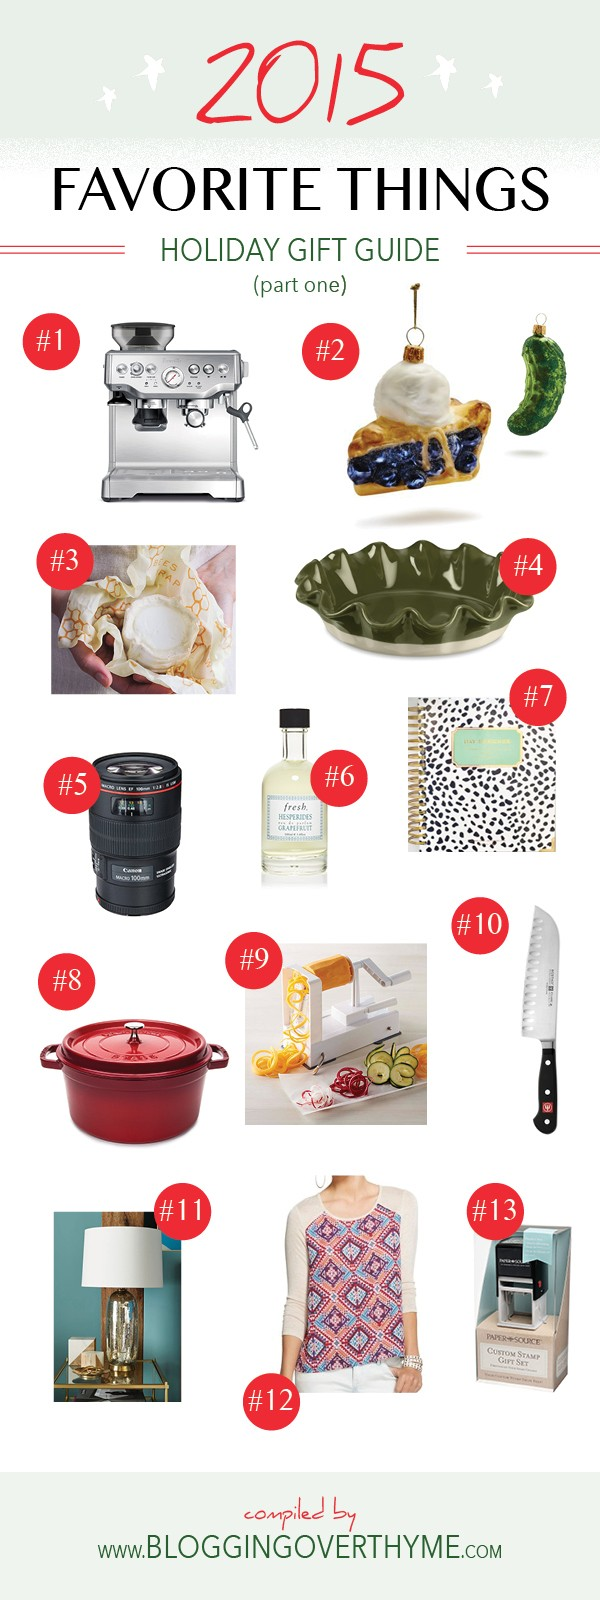 Favorite Things Holiday Gift Guide - 13 great gift ideas for the holiday season!